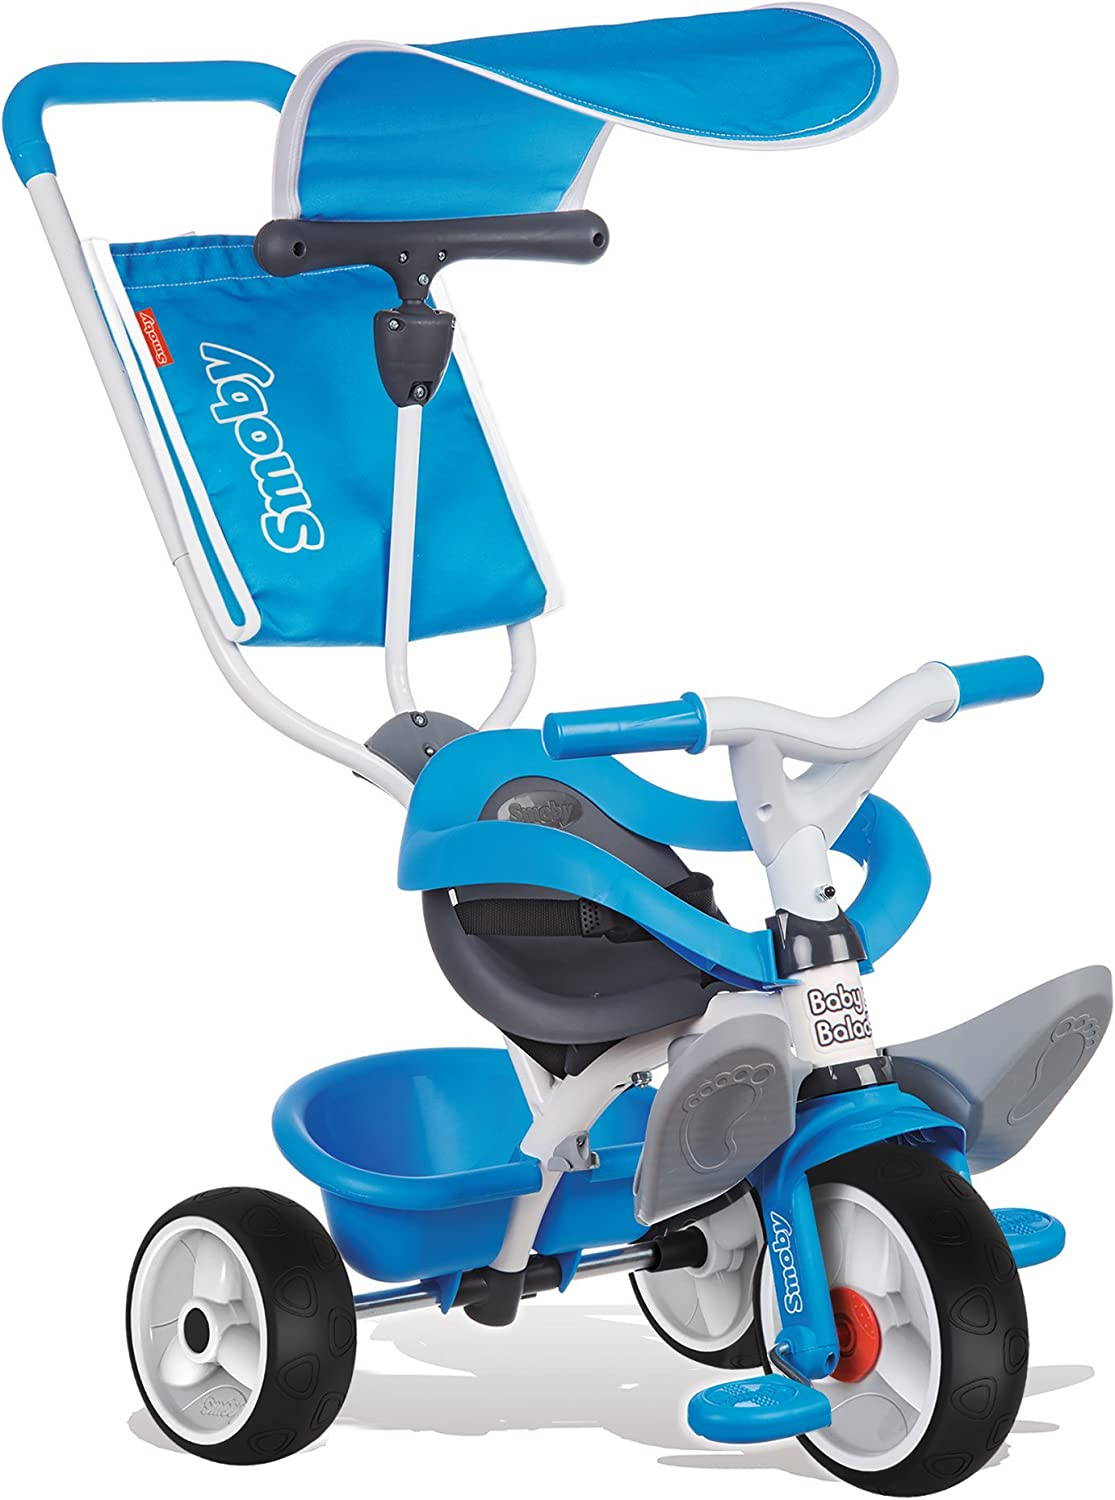 Smoby - Triciclo Baby balade, Color Azul (444208): Amazon.es ...